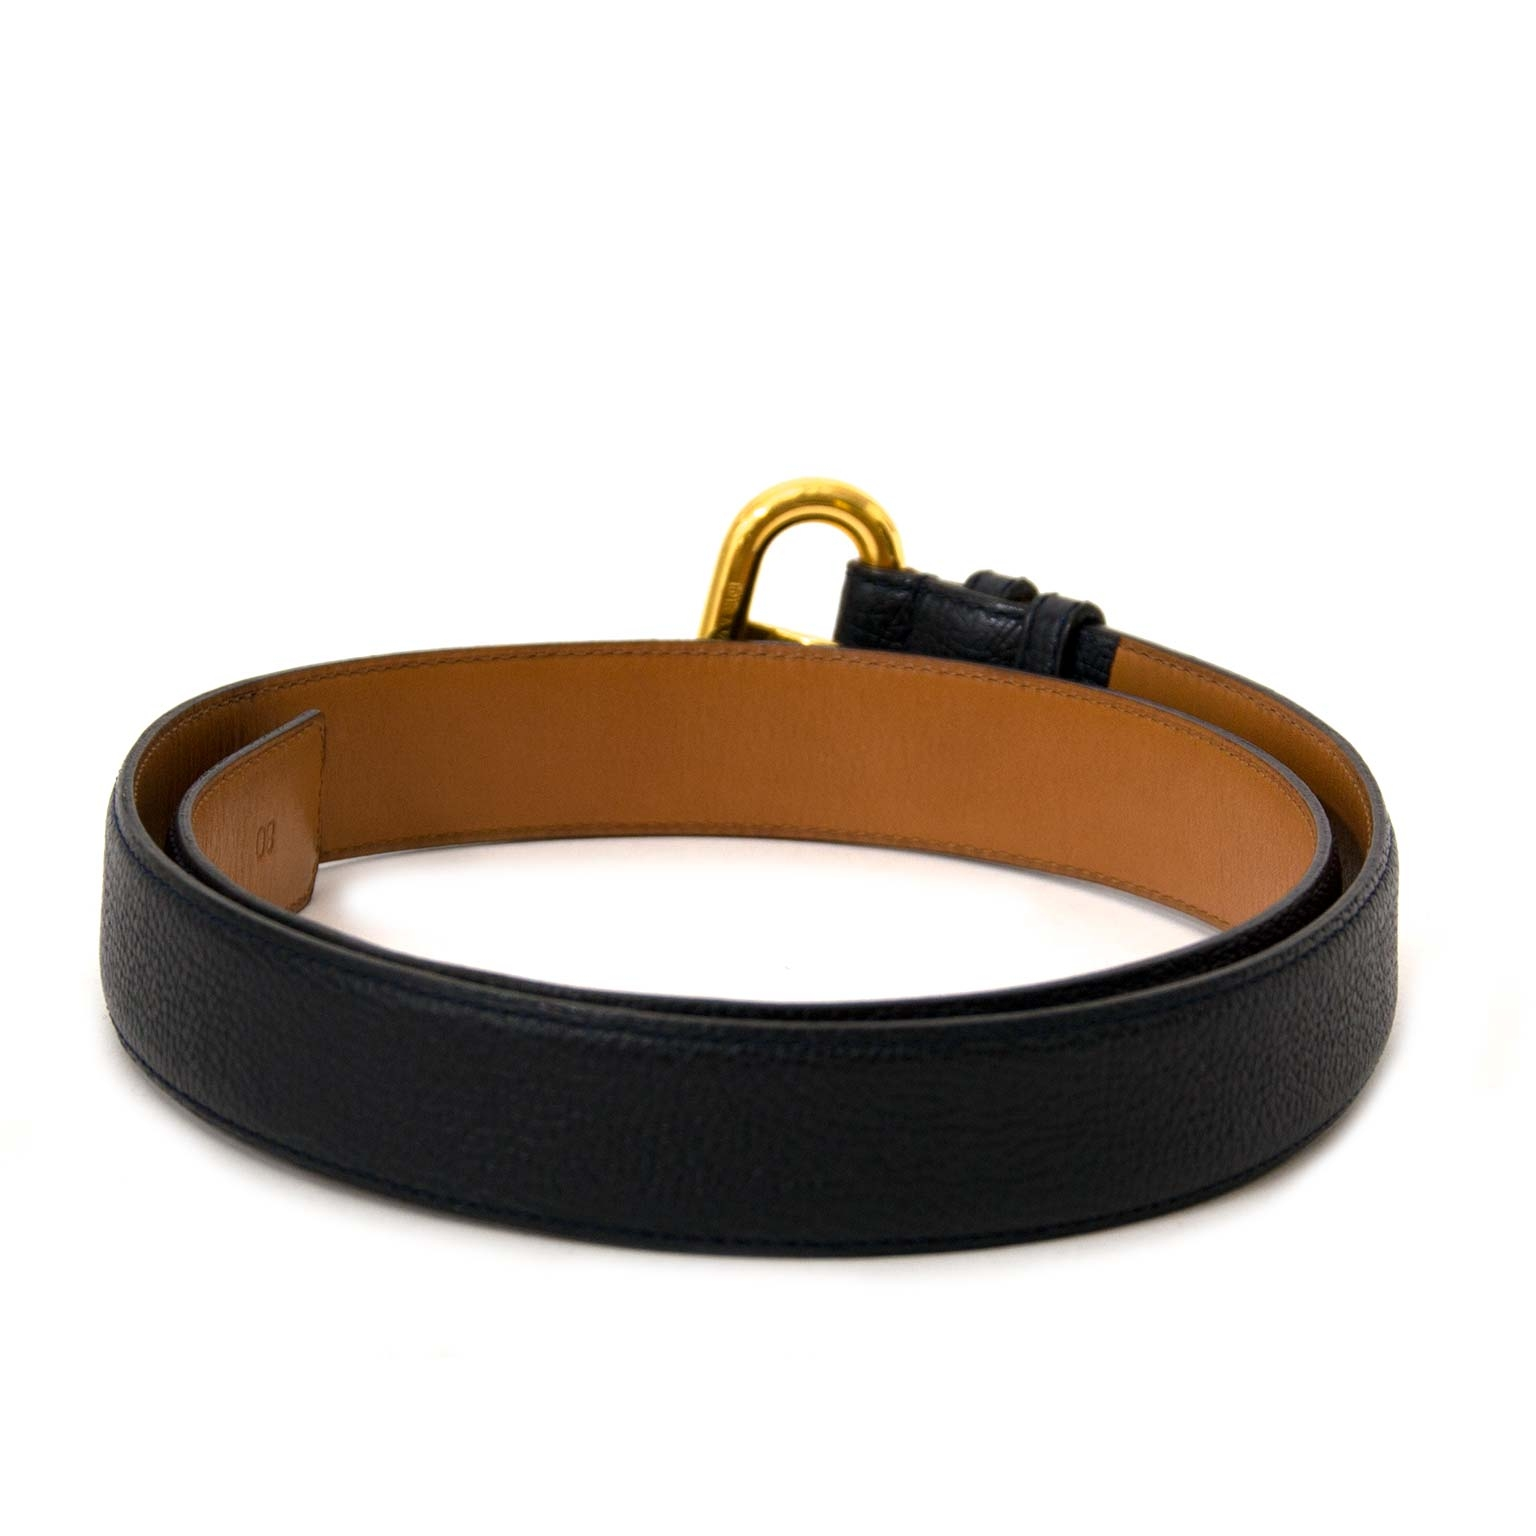 31db203cd22 ... Delvaux Dark Blue Leather Belt for sale online at labellov. Koop en  verkoop uw authentieke